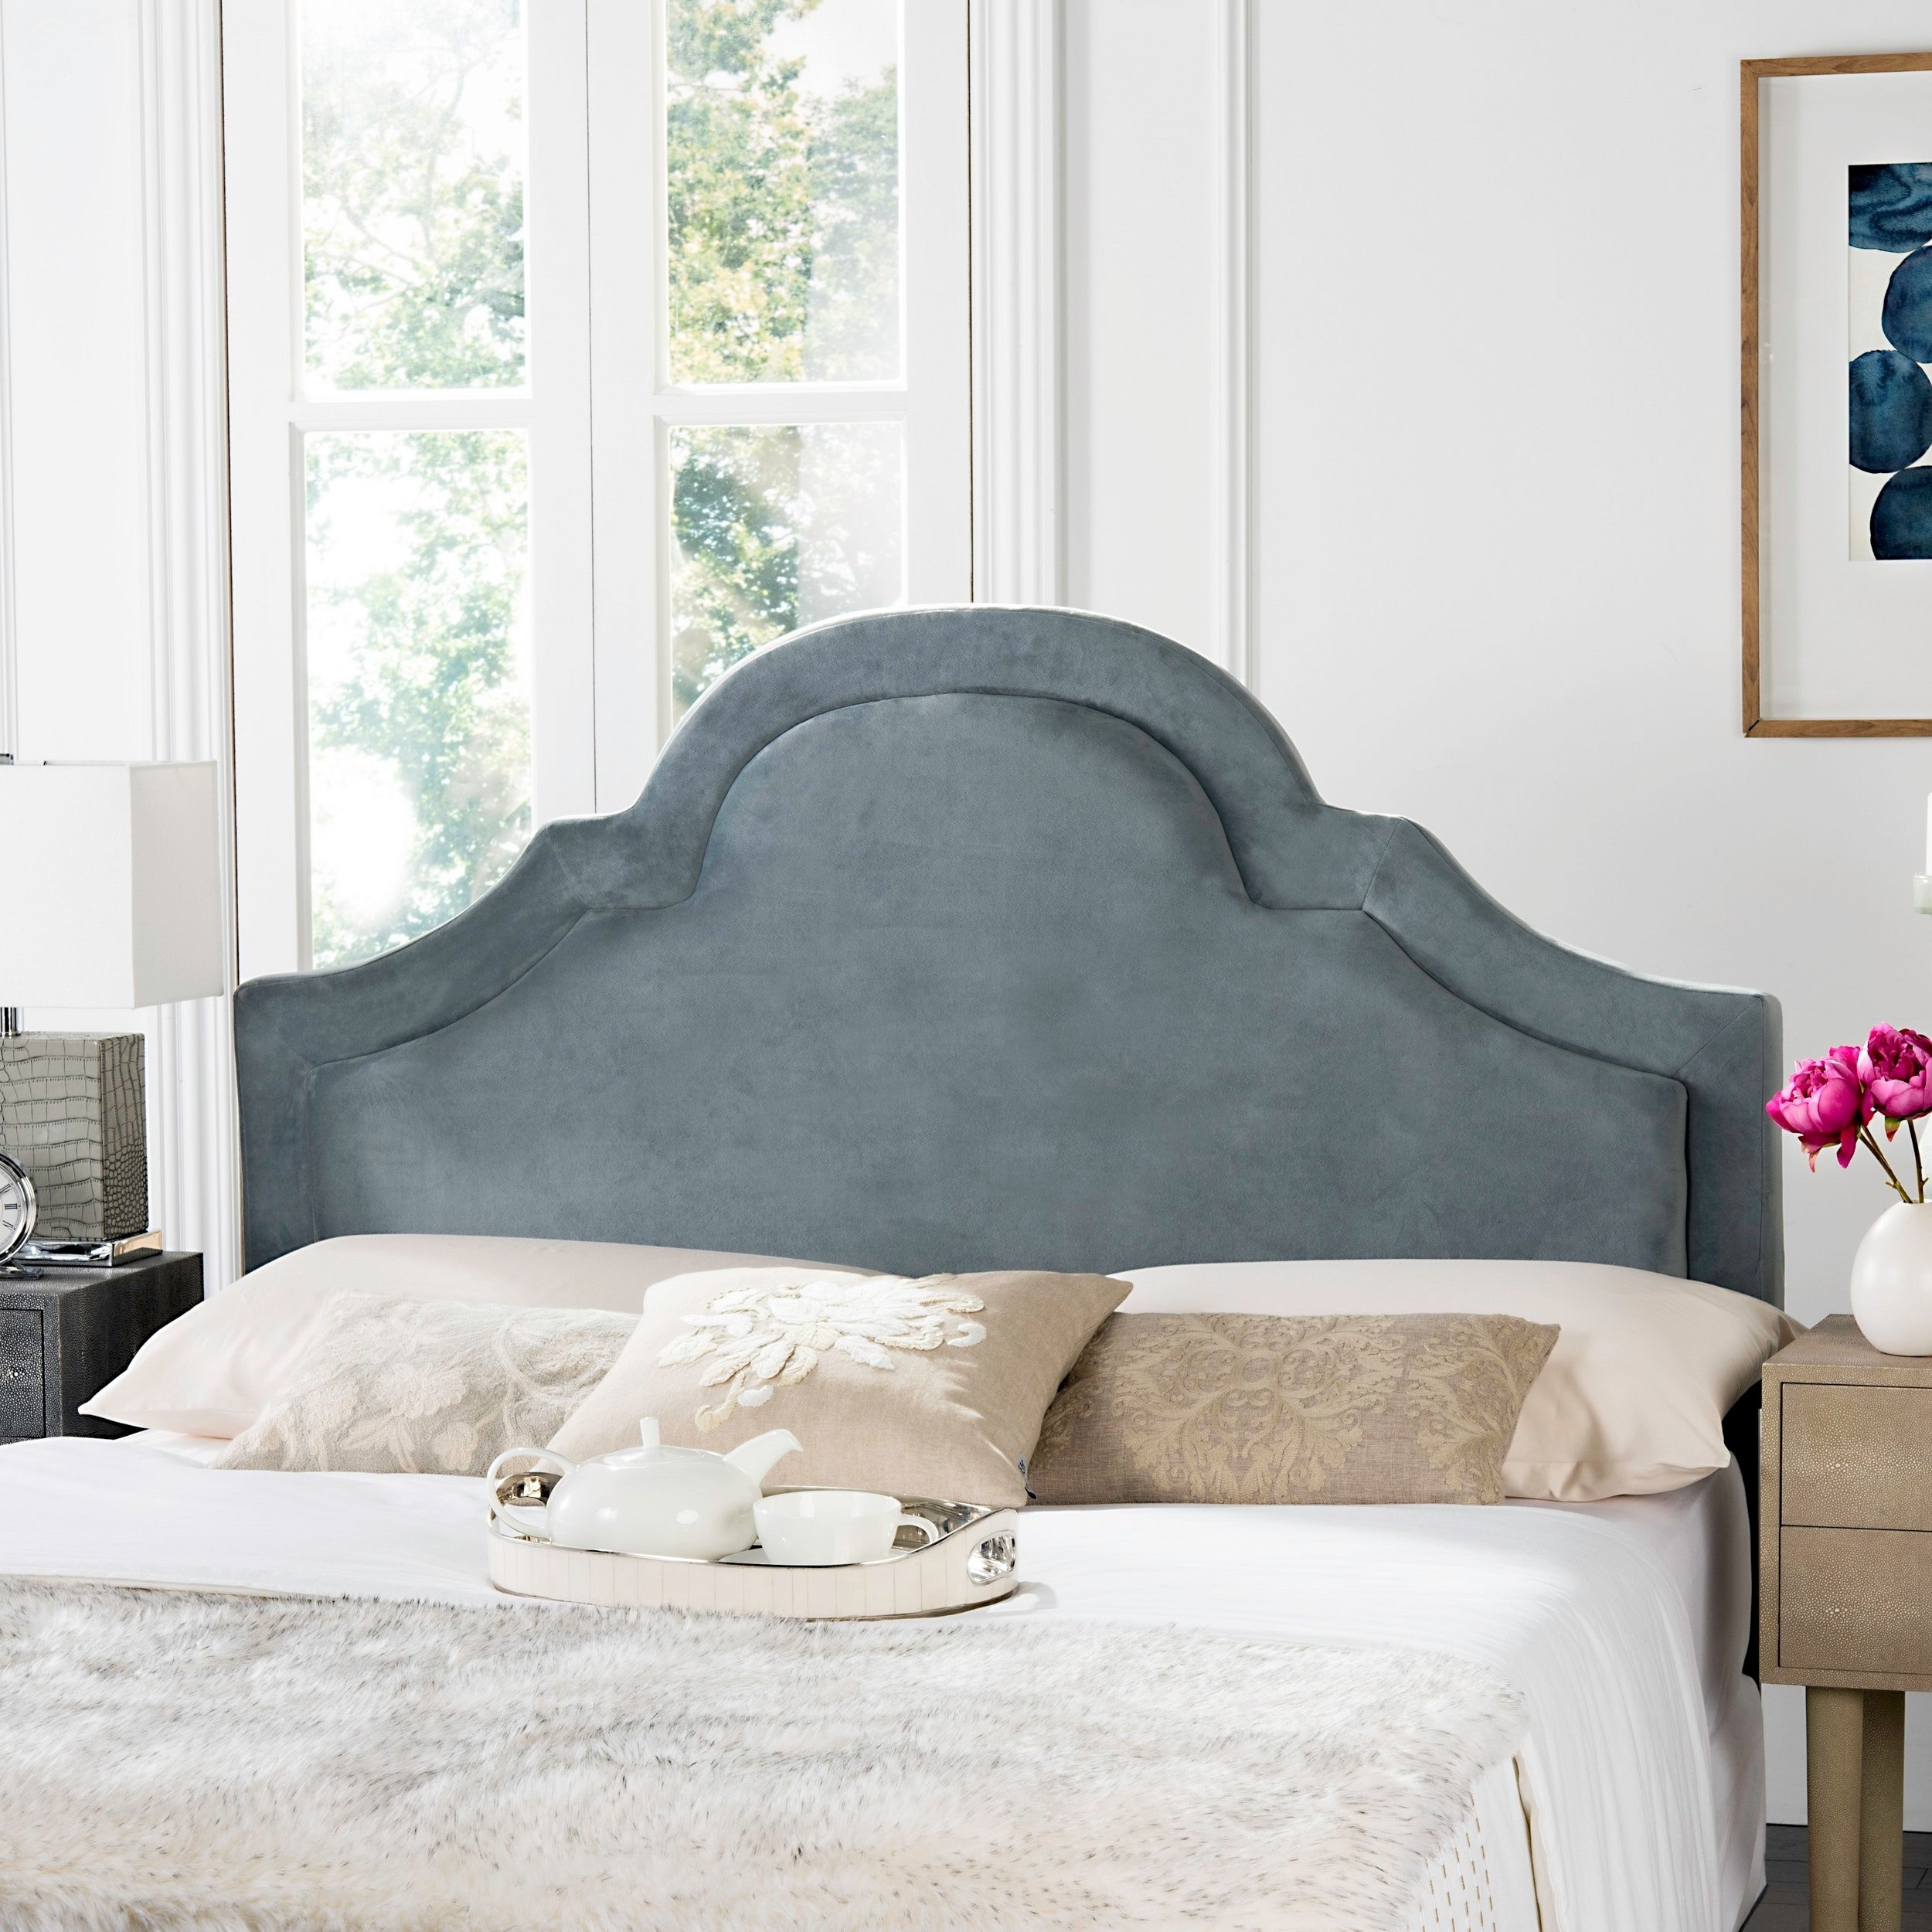 Shop Safavieh Kerstin Wedgwood Blue Upholstered Arched Headboard Queen On Sale Overstock 8419850